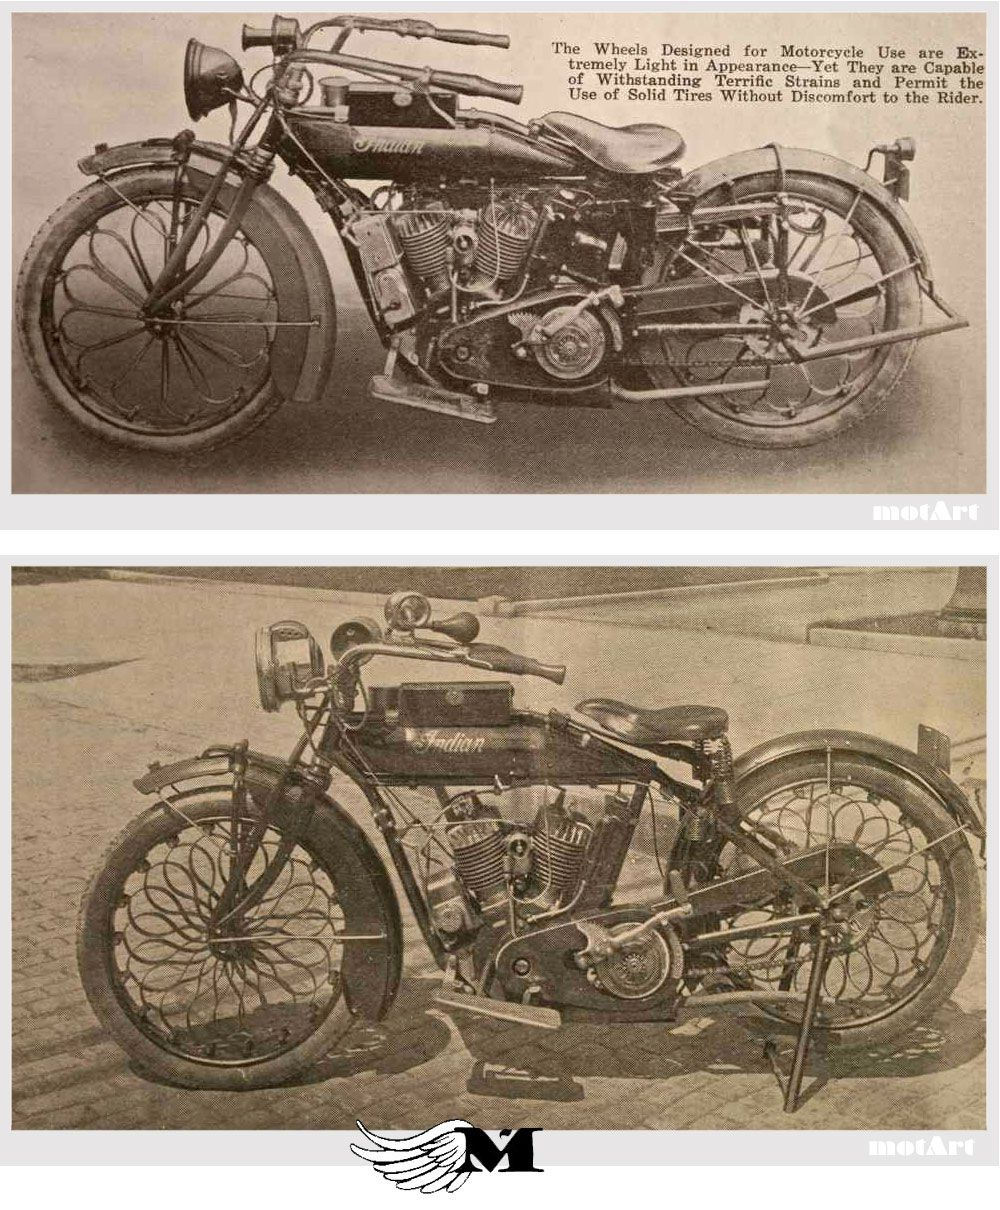 70 Vintage Indian Motorcycle Ads Images Indian Motorcycle Vintage Indian Motorcycles Motorcycle